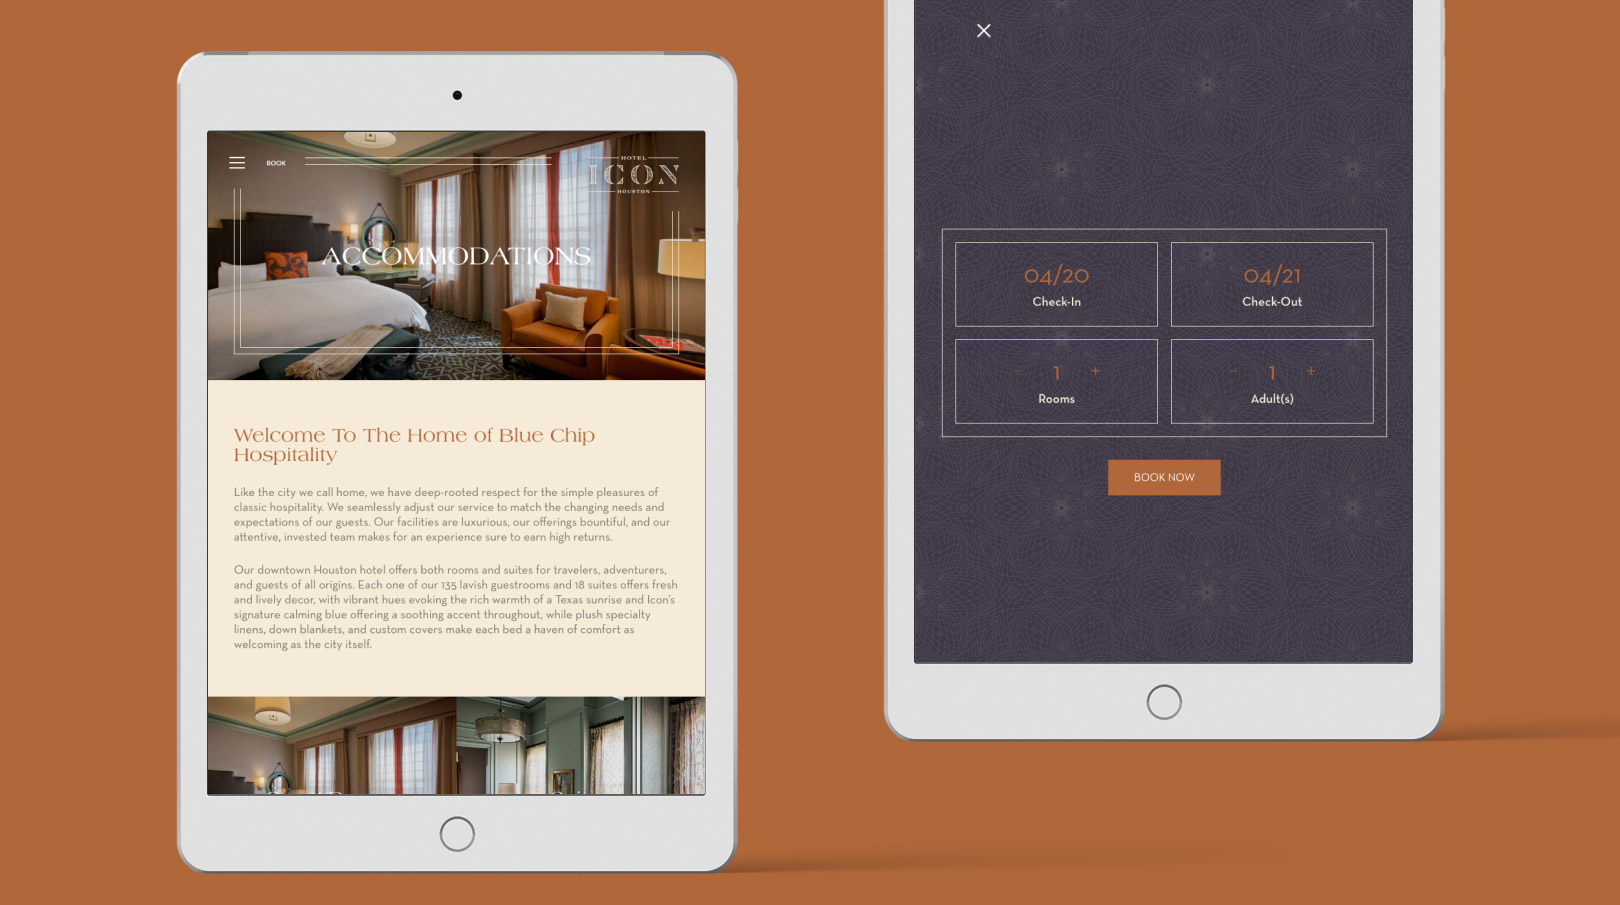 Hotel Icon Booking Widget